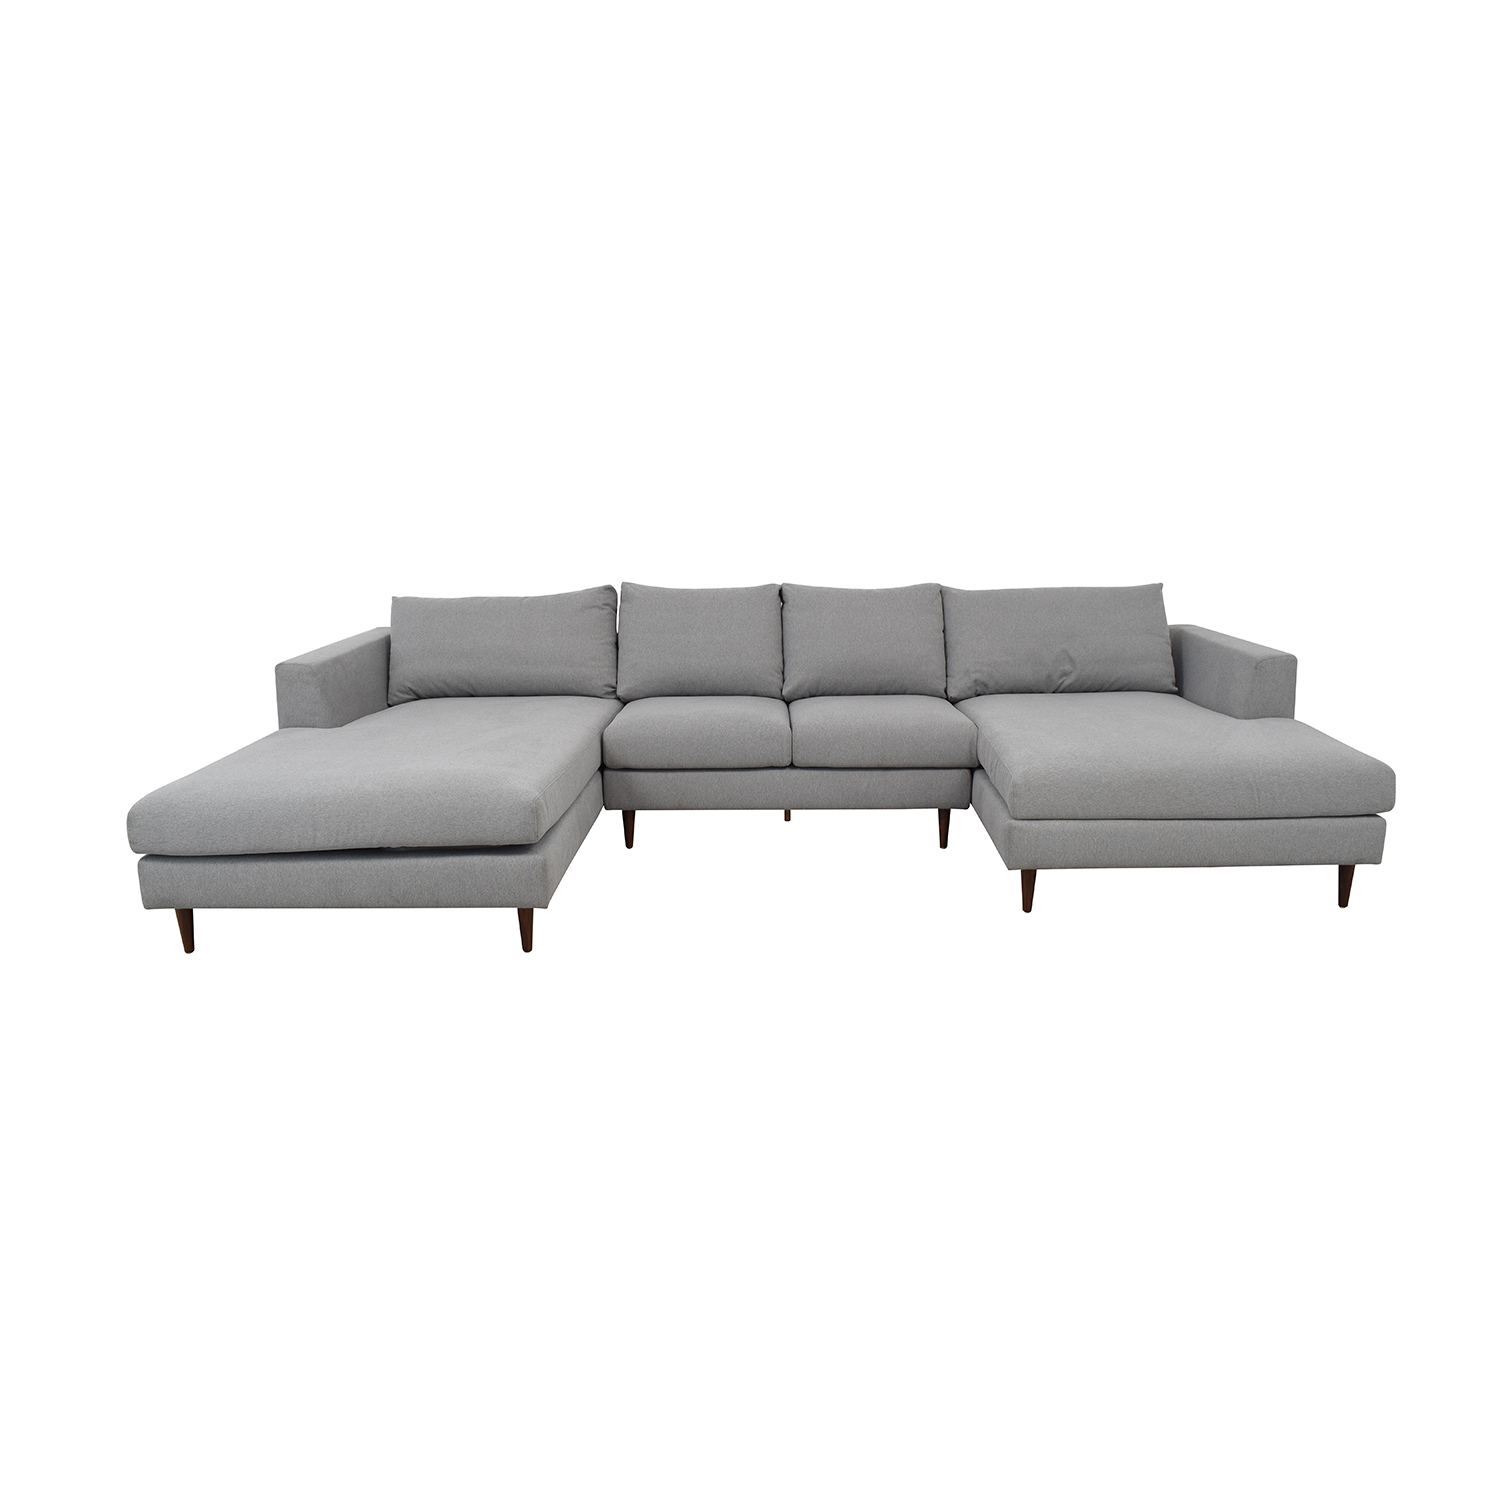 Asher Performance Felt Ash U-Shaped Double Chaise Sectional Sofas